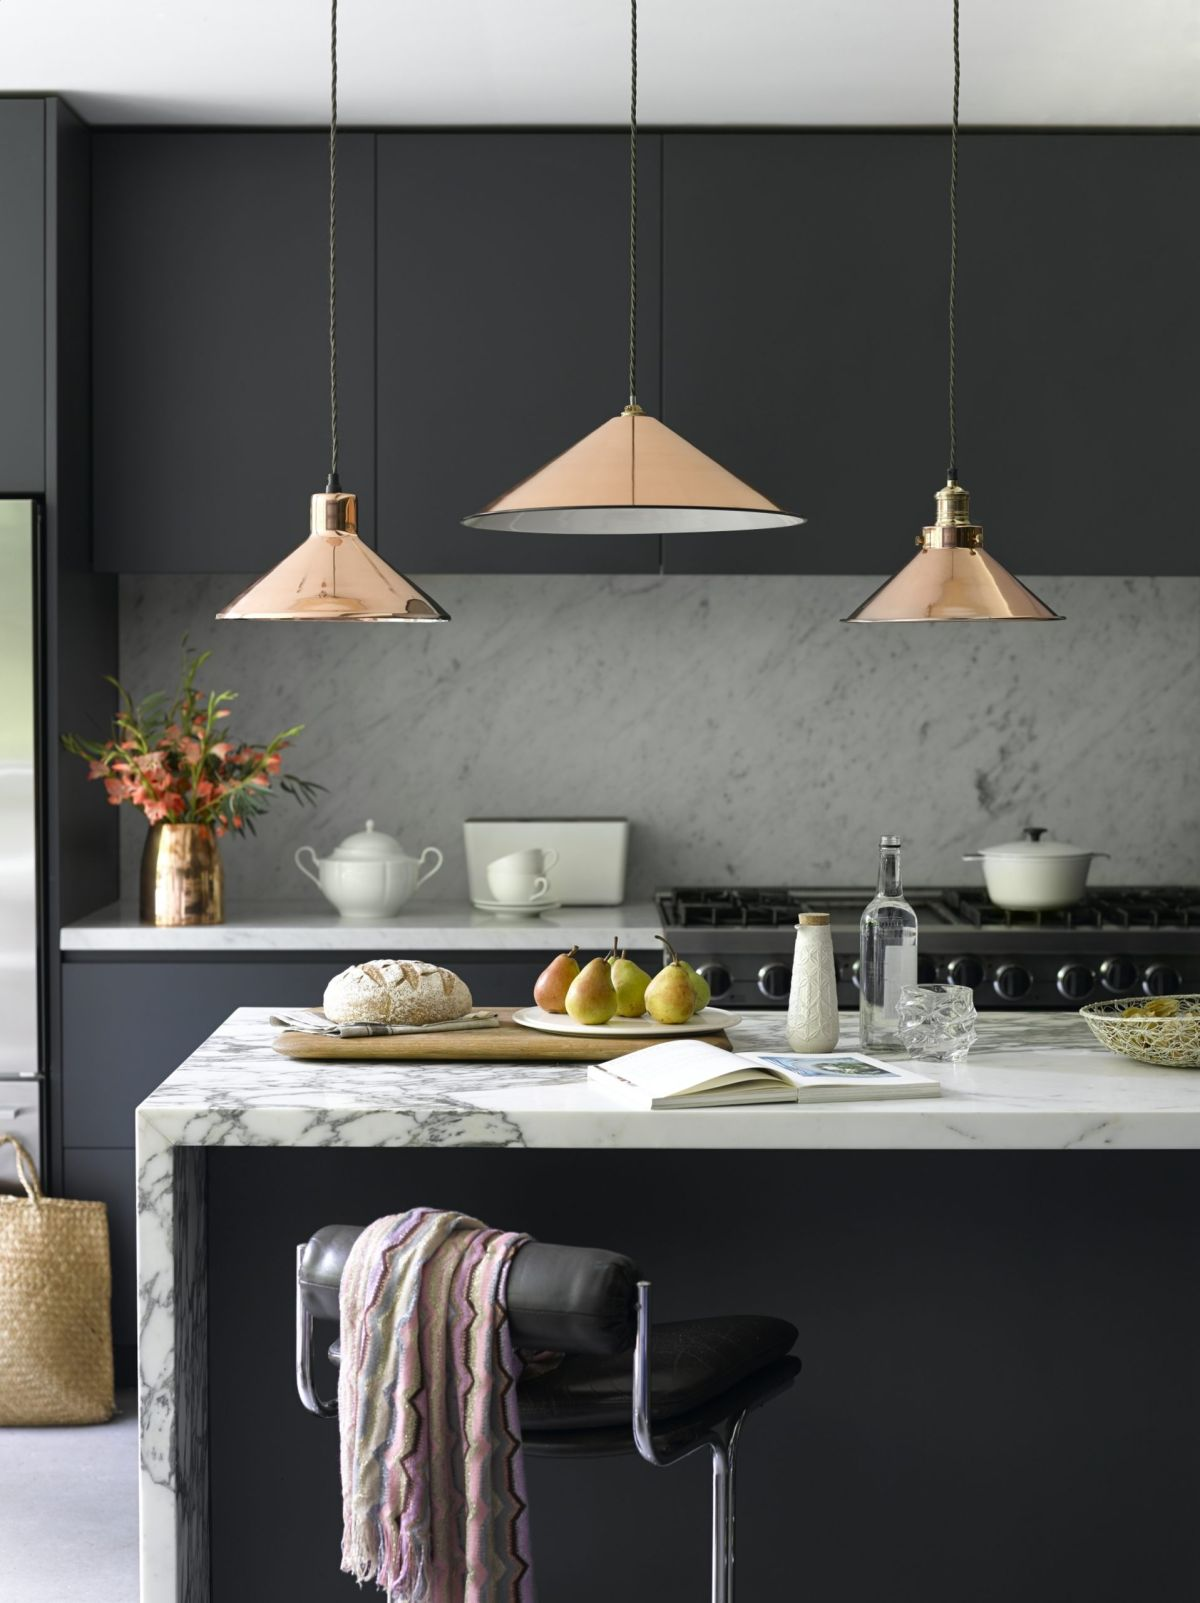 Image of: Lighting Ideas For Small Kitchens Ways To Brighten Up A Dark Room Homes Gardens Homes Gardensdocument Documenttype